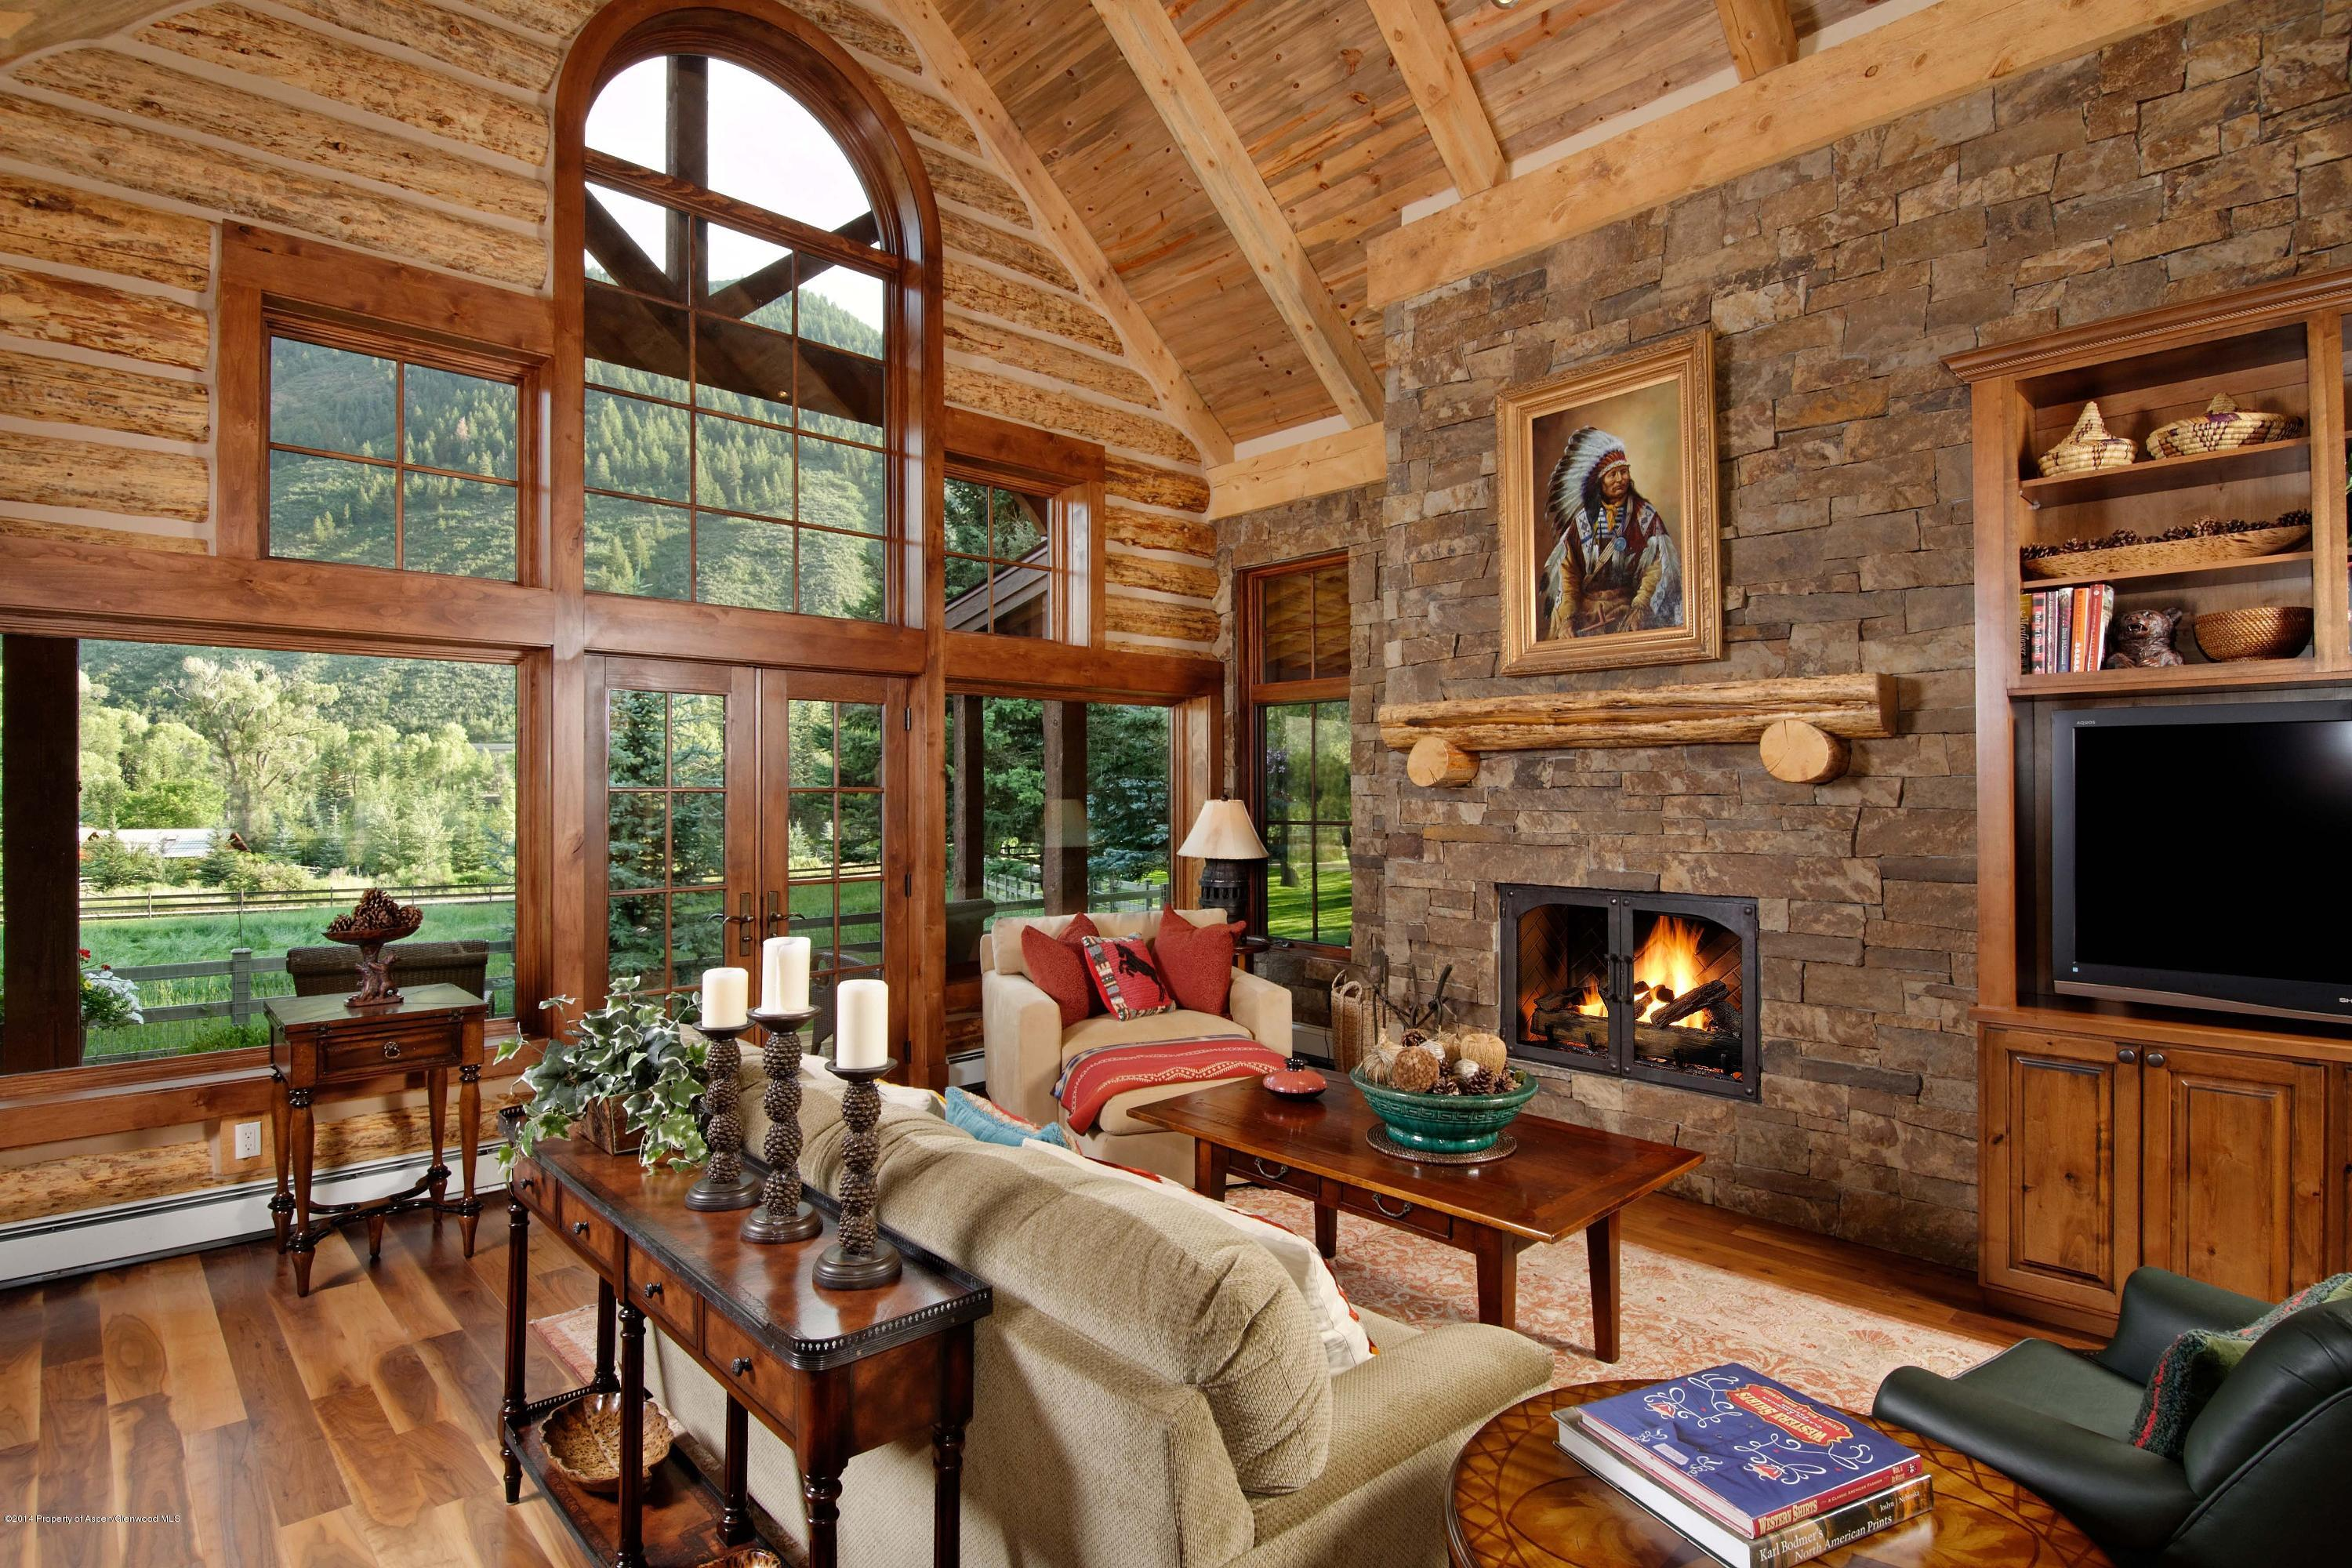 MLS# 135595 - 27 - 50 E River Ranch Road, Snowmass, CO 81654